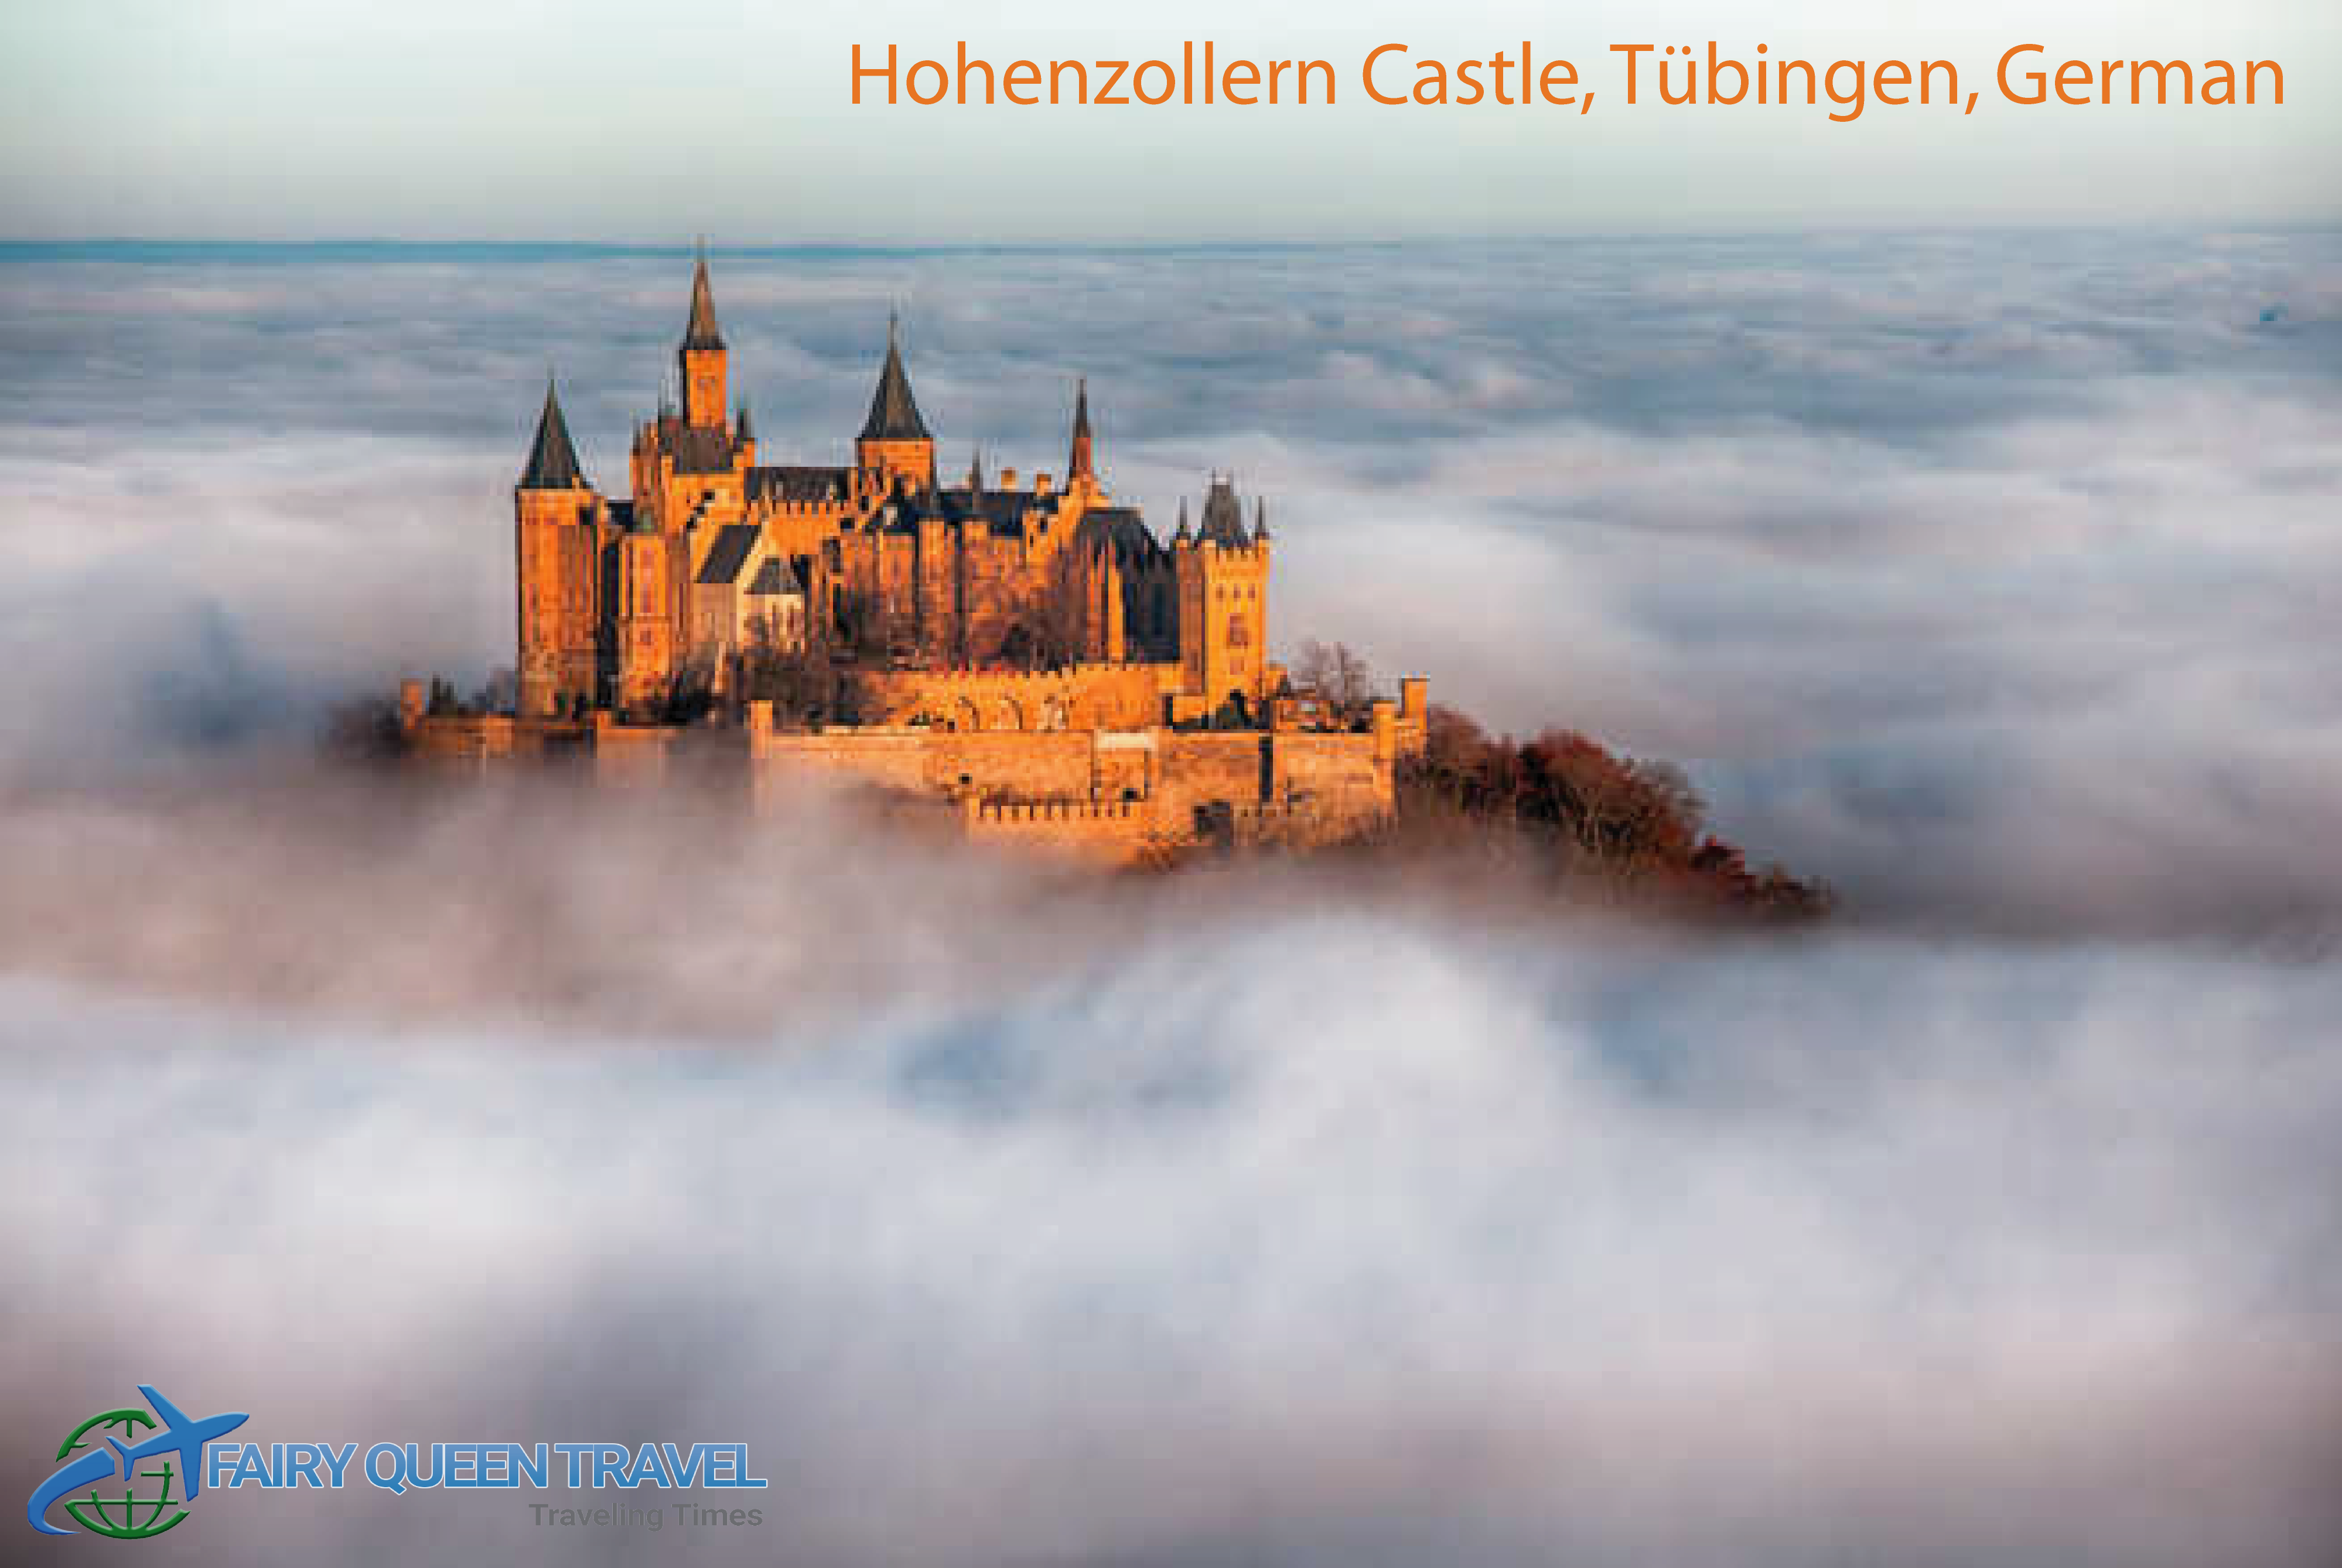 Hohenzollern Castle Tubingen Germany The Majestic Burg Hohenzollern Perched High On A Wooded Hill Evo Germany Castles Hohenzollern Castle European Castles